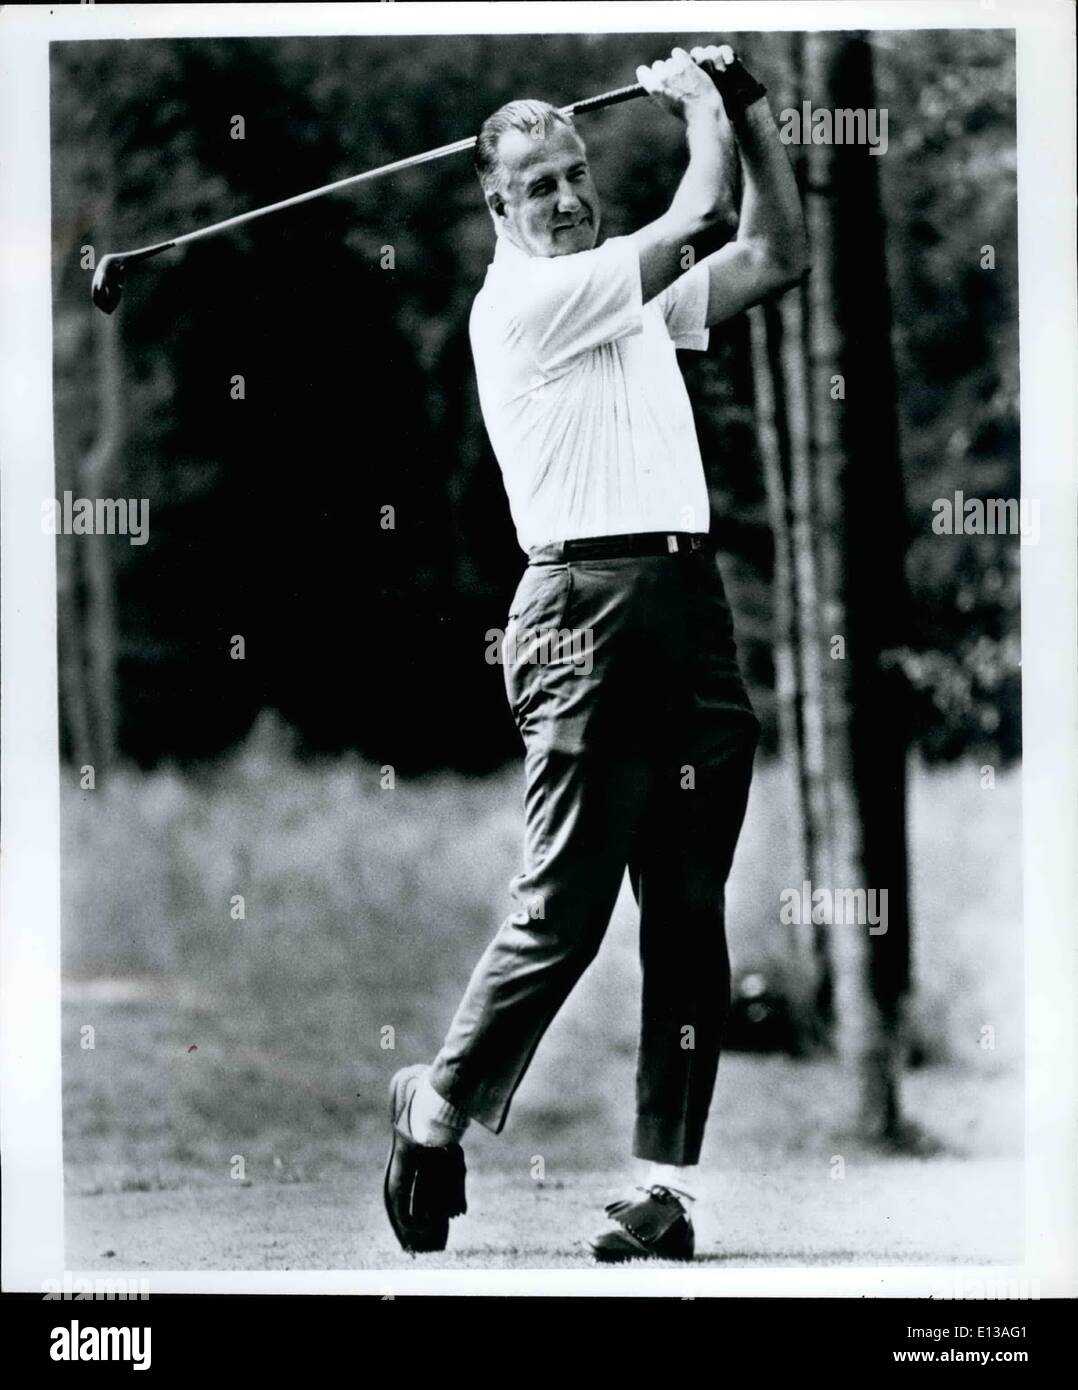 Feb. 29, 2012 - 31. when he has time for relaxation, Spiro Agnew enjoys a round of golf. He is an avid reader of History and Historical fiction and enjoys listening to semi-classical music. - Stock Image